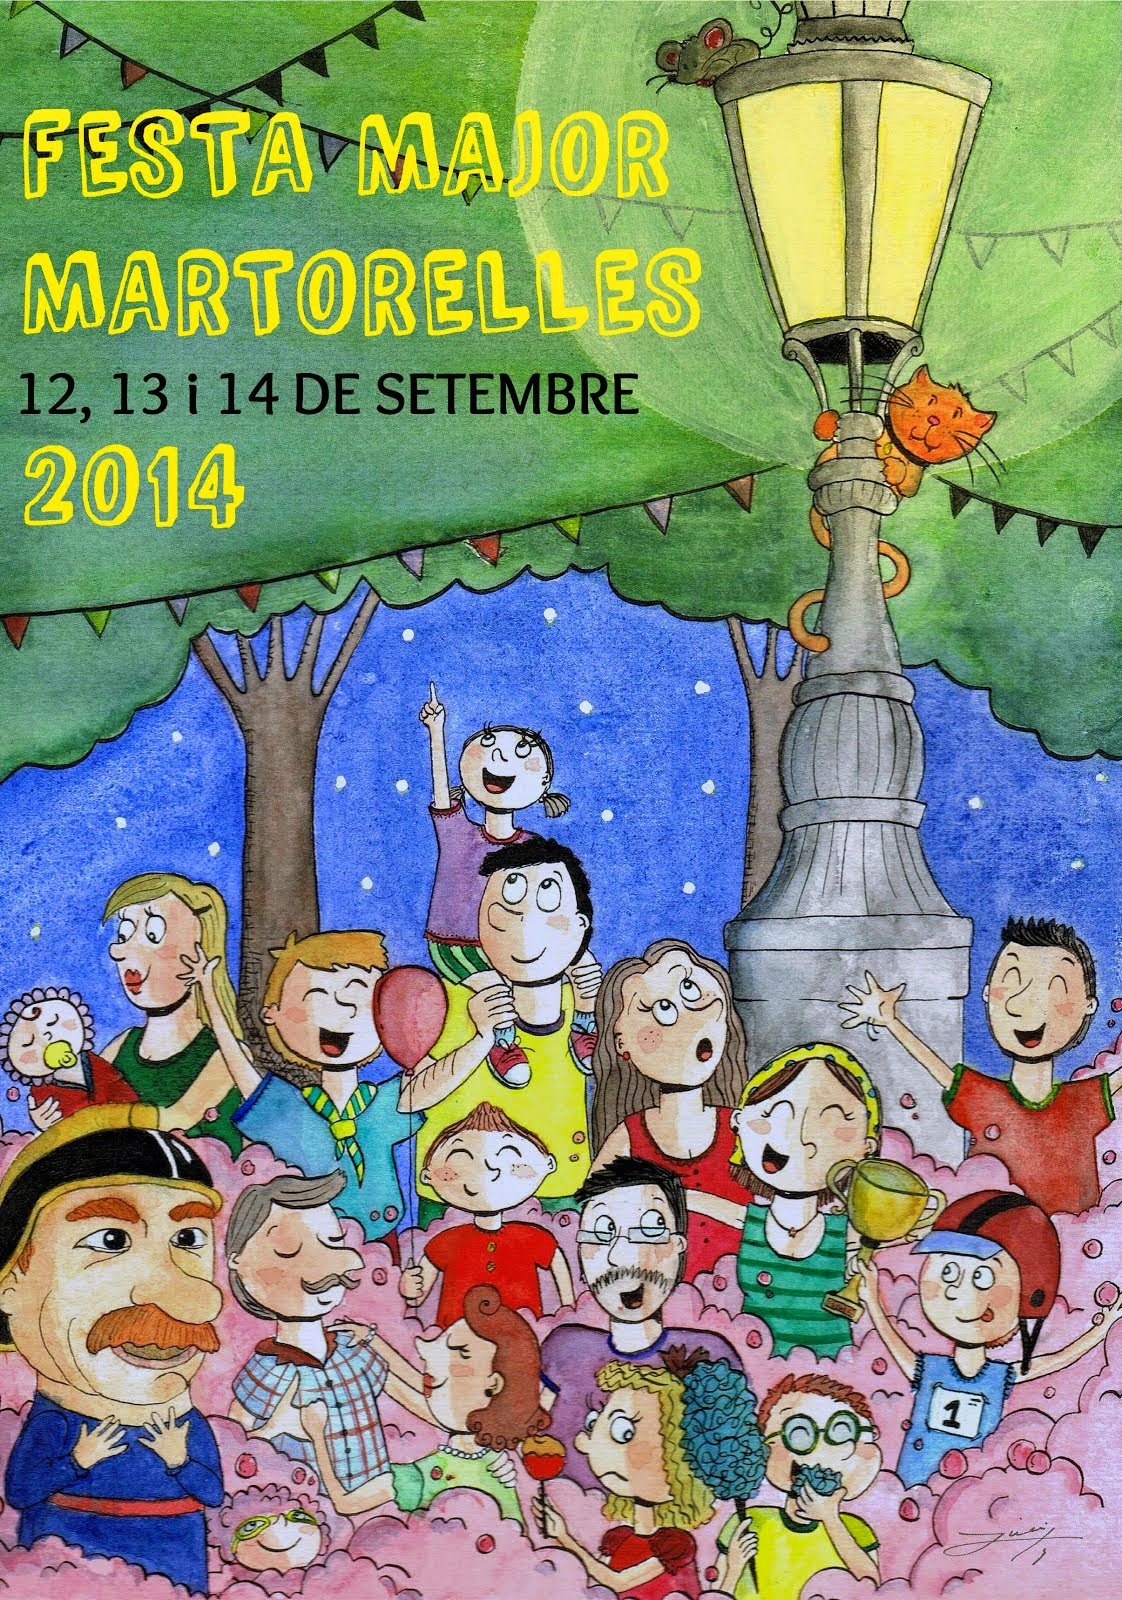 Cartell Festa Major Martorelles 2014